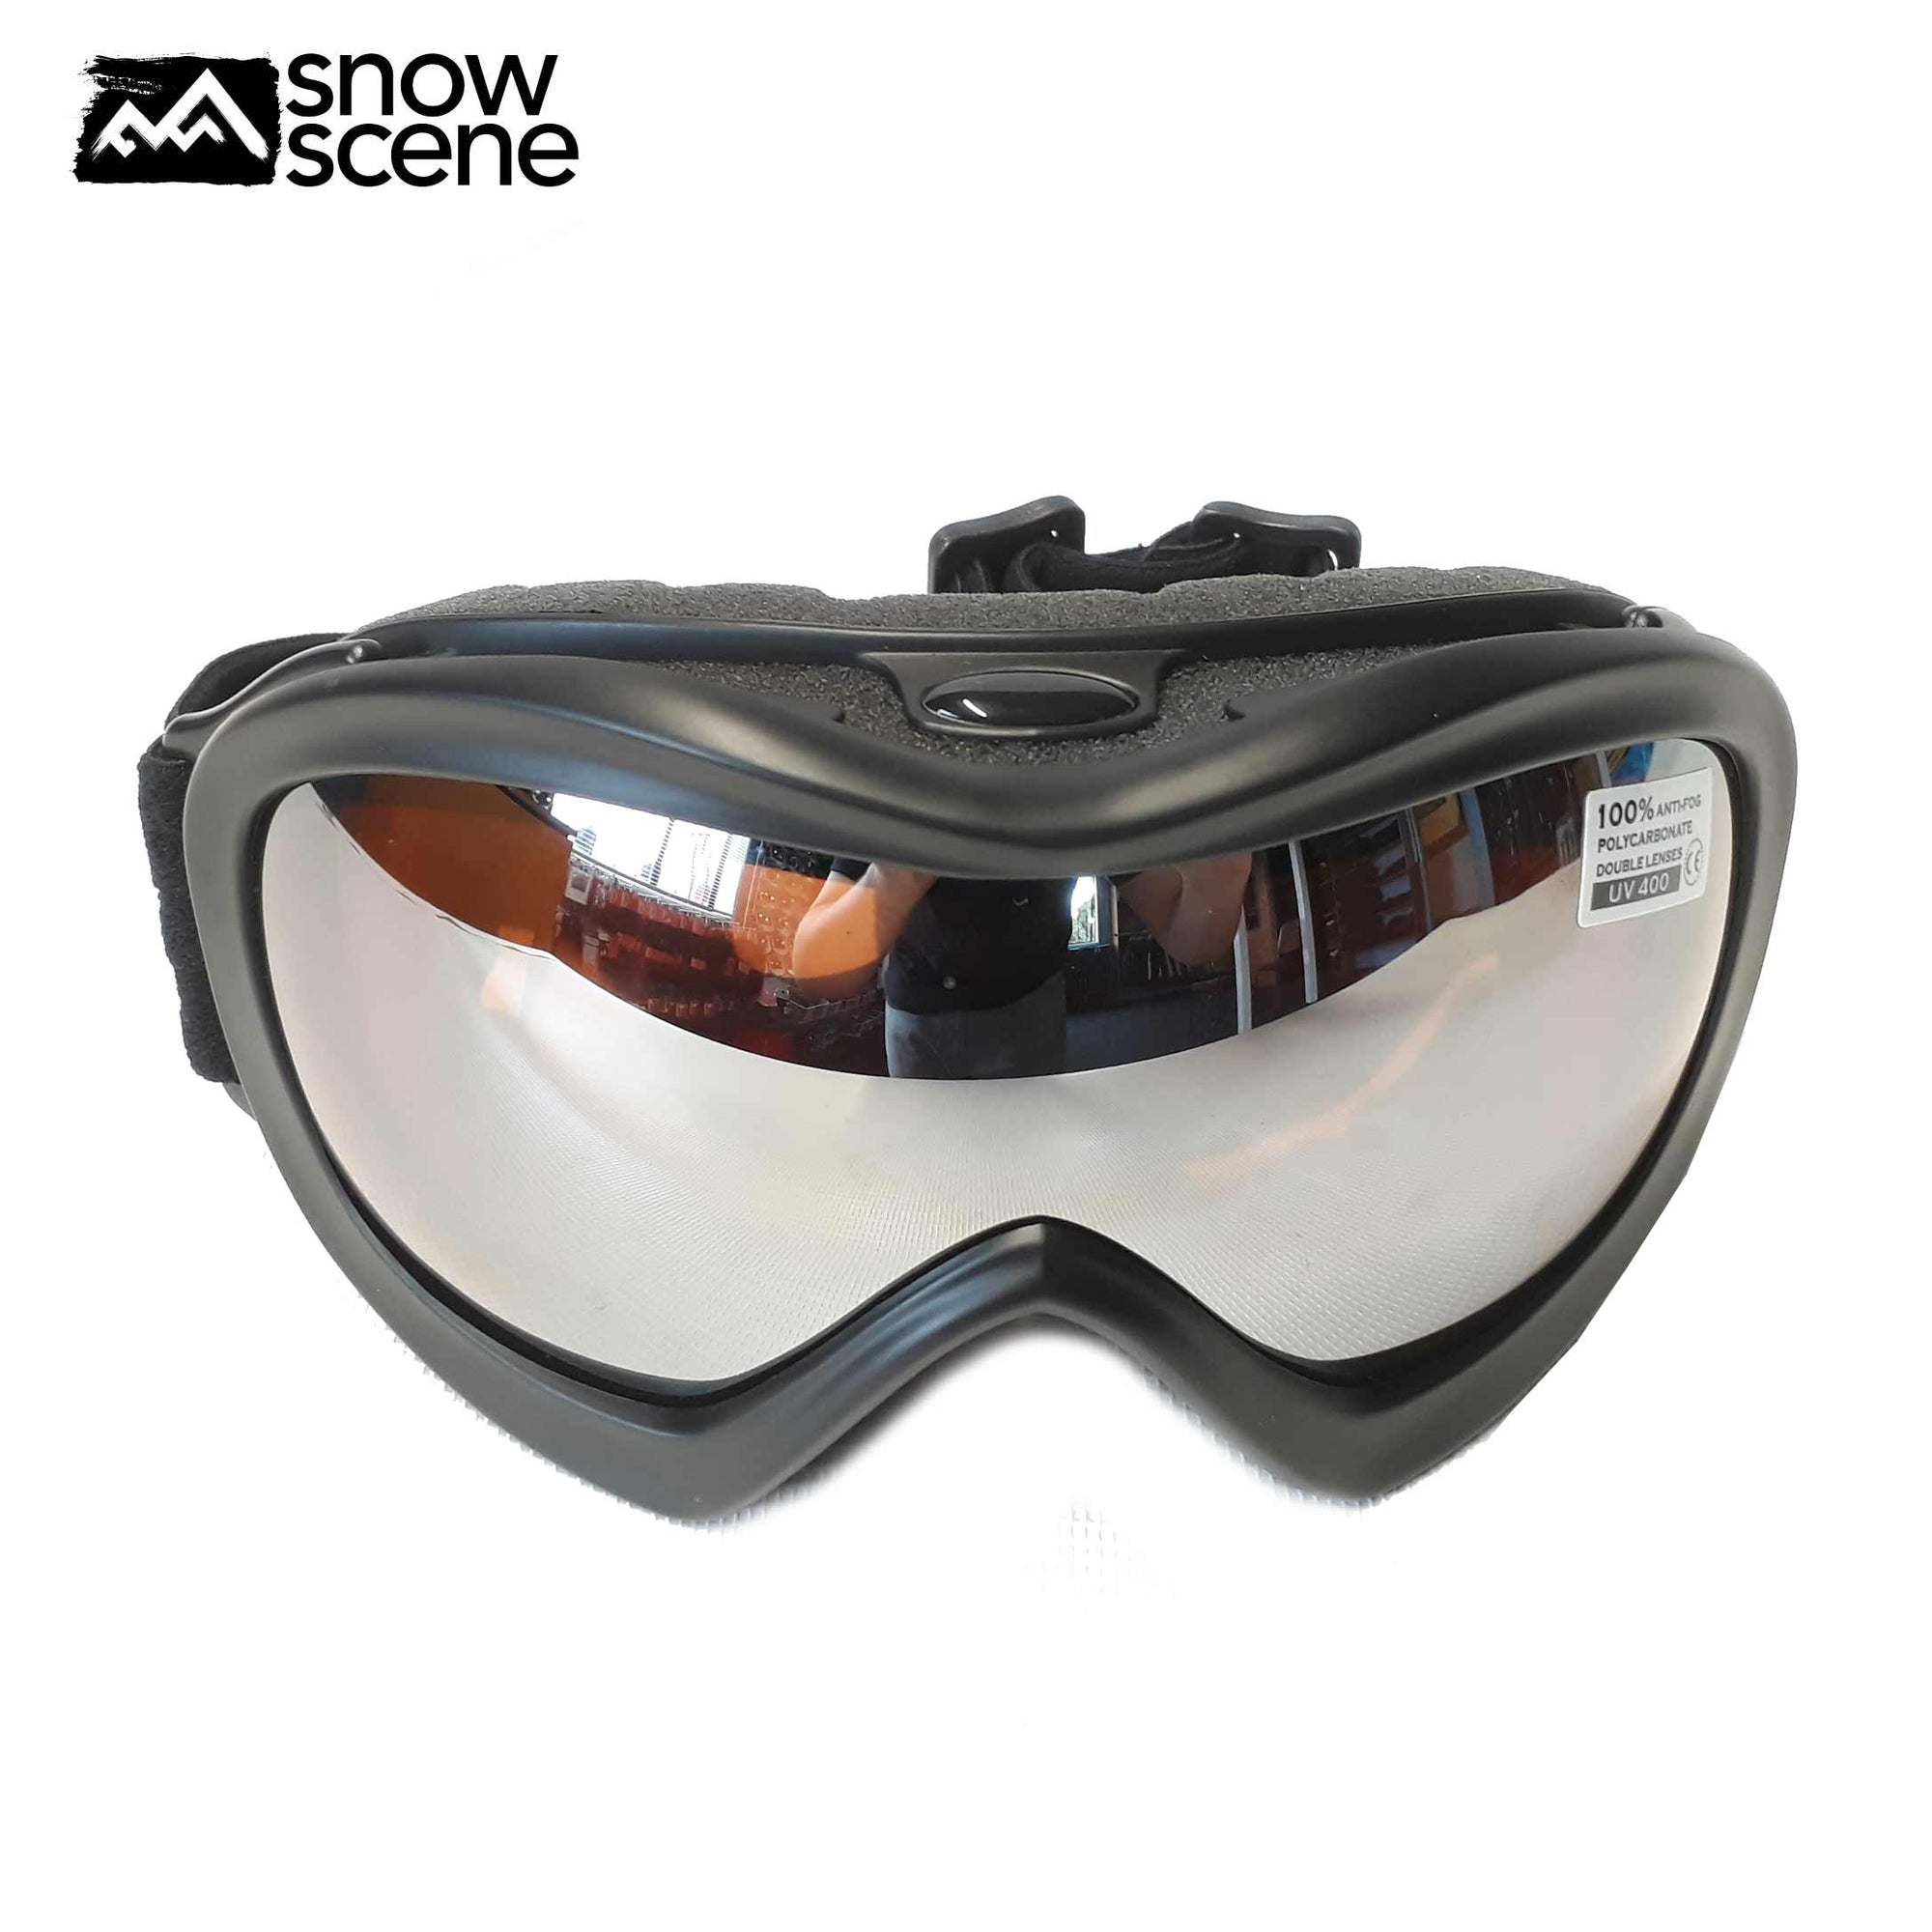 Mountain Adventure Adult/Teen Goggle- Shop Skis and snow gear online nz - snowscene